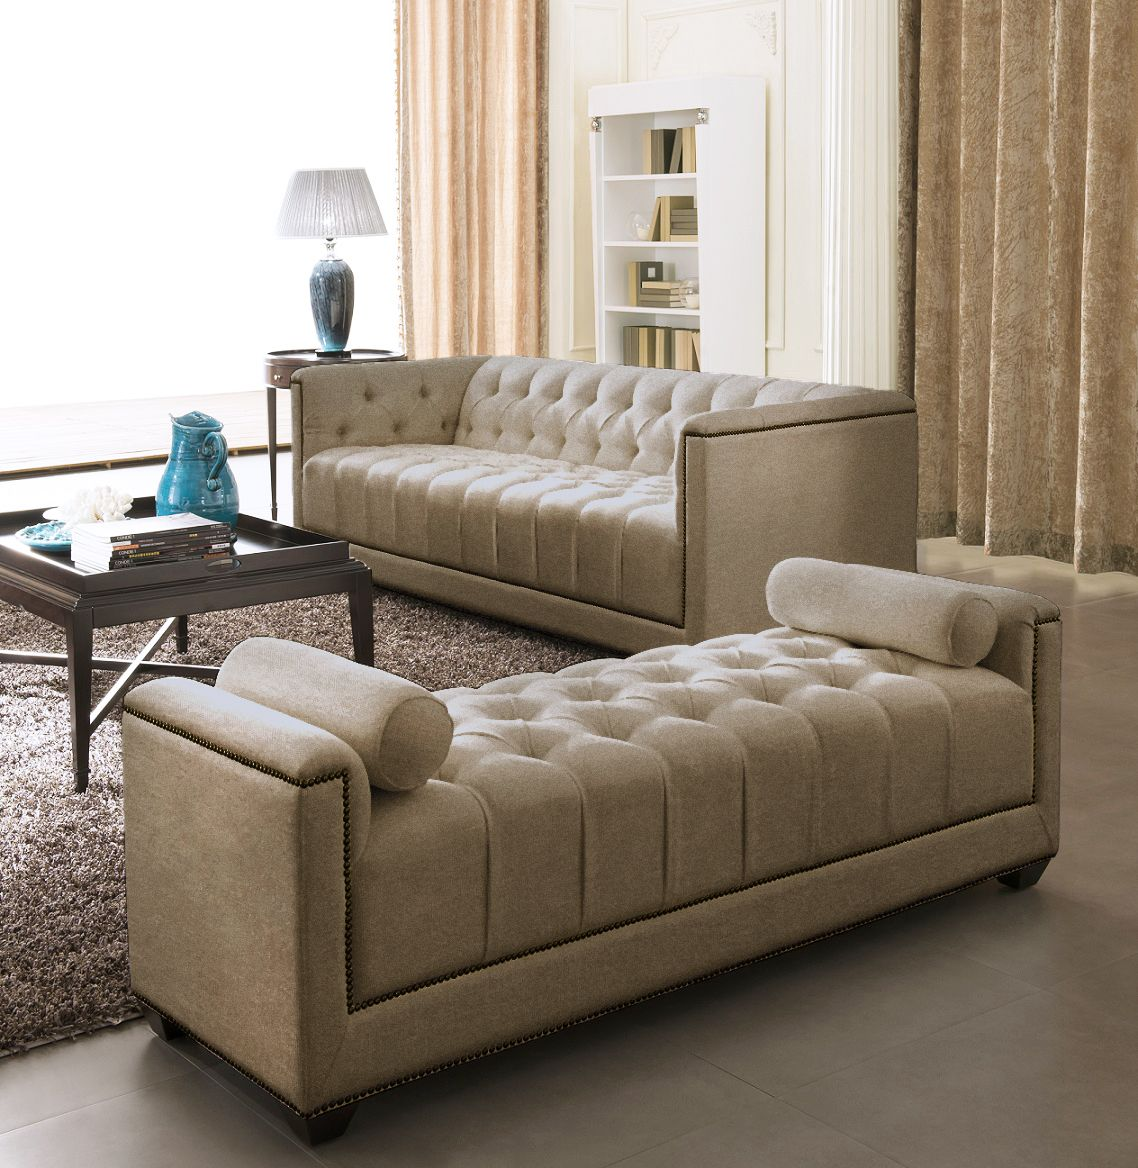 Fabric Sofa Set Eden Gold Living Room Sofa Design Sofa Set